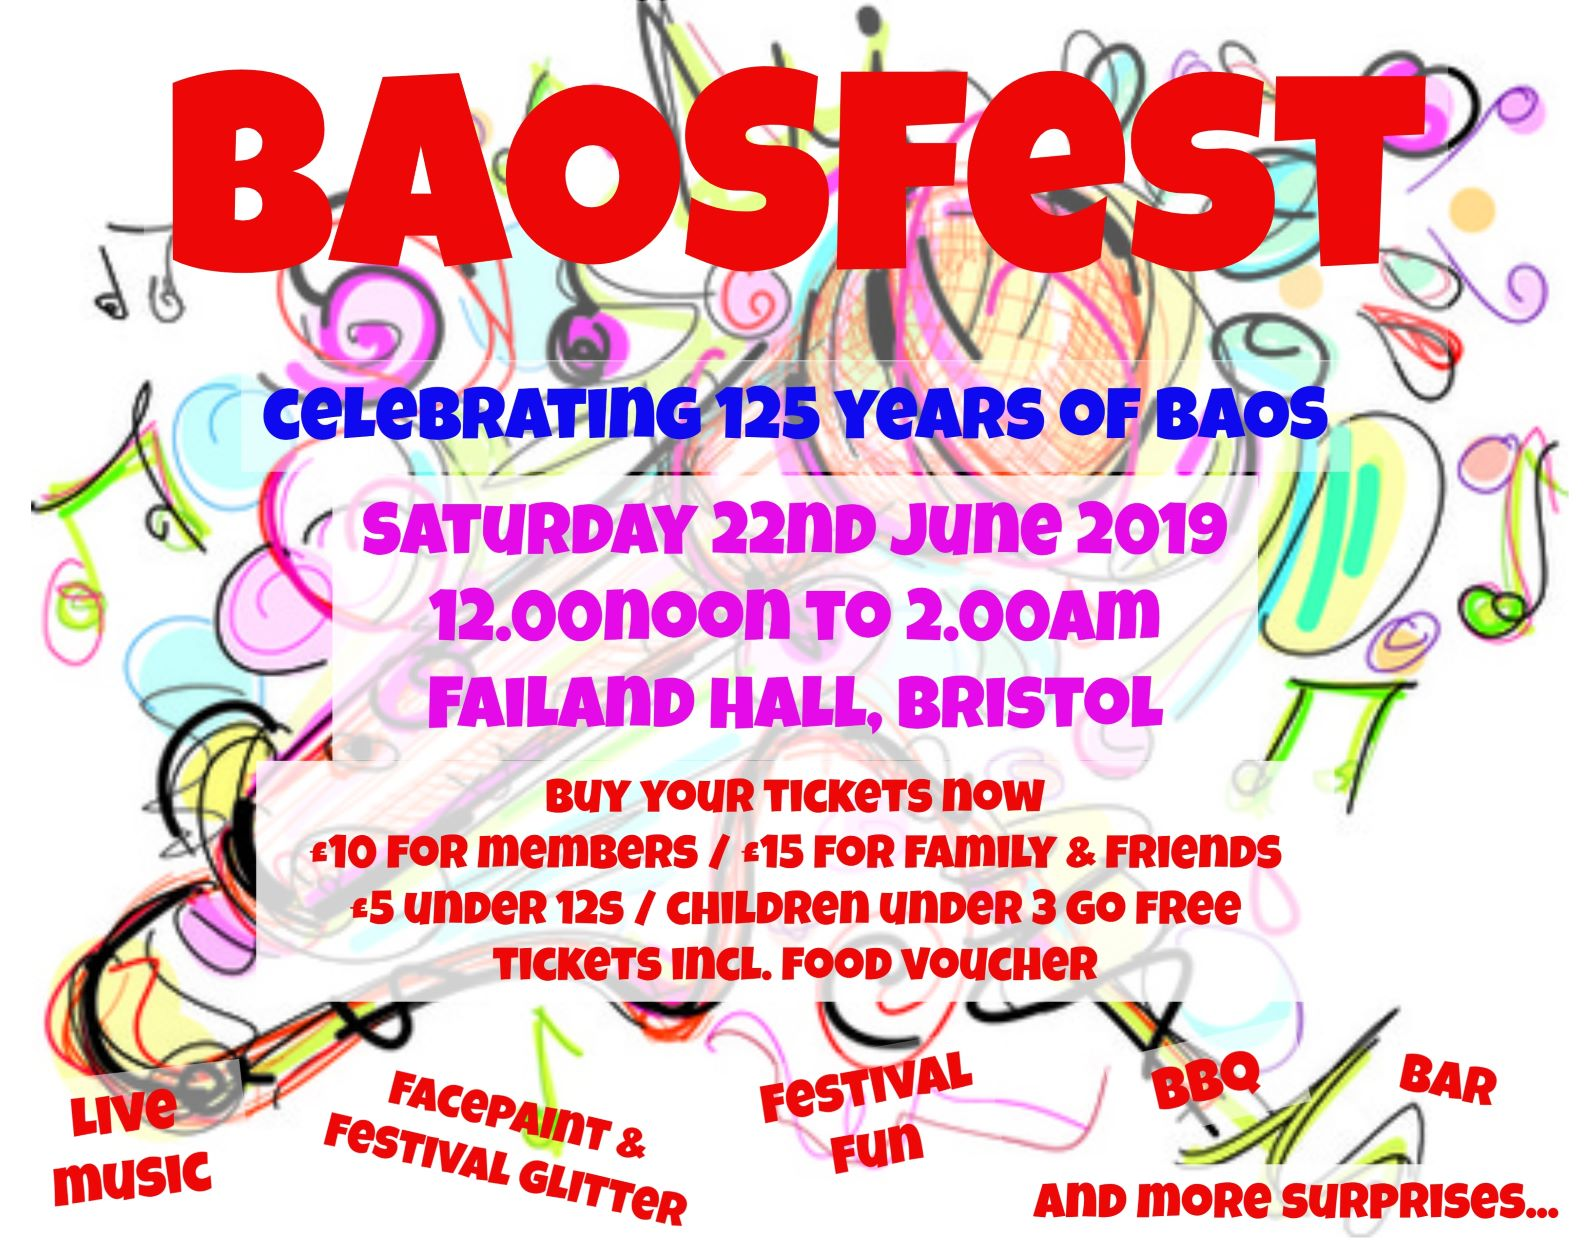 BAOSFest - Celebrating 125 Years of BAOS banner image